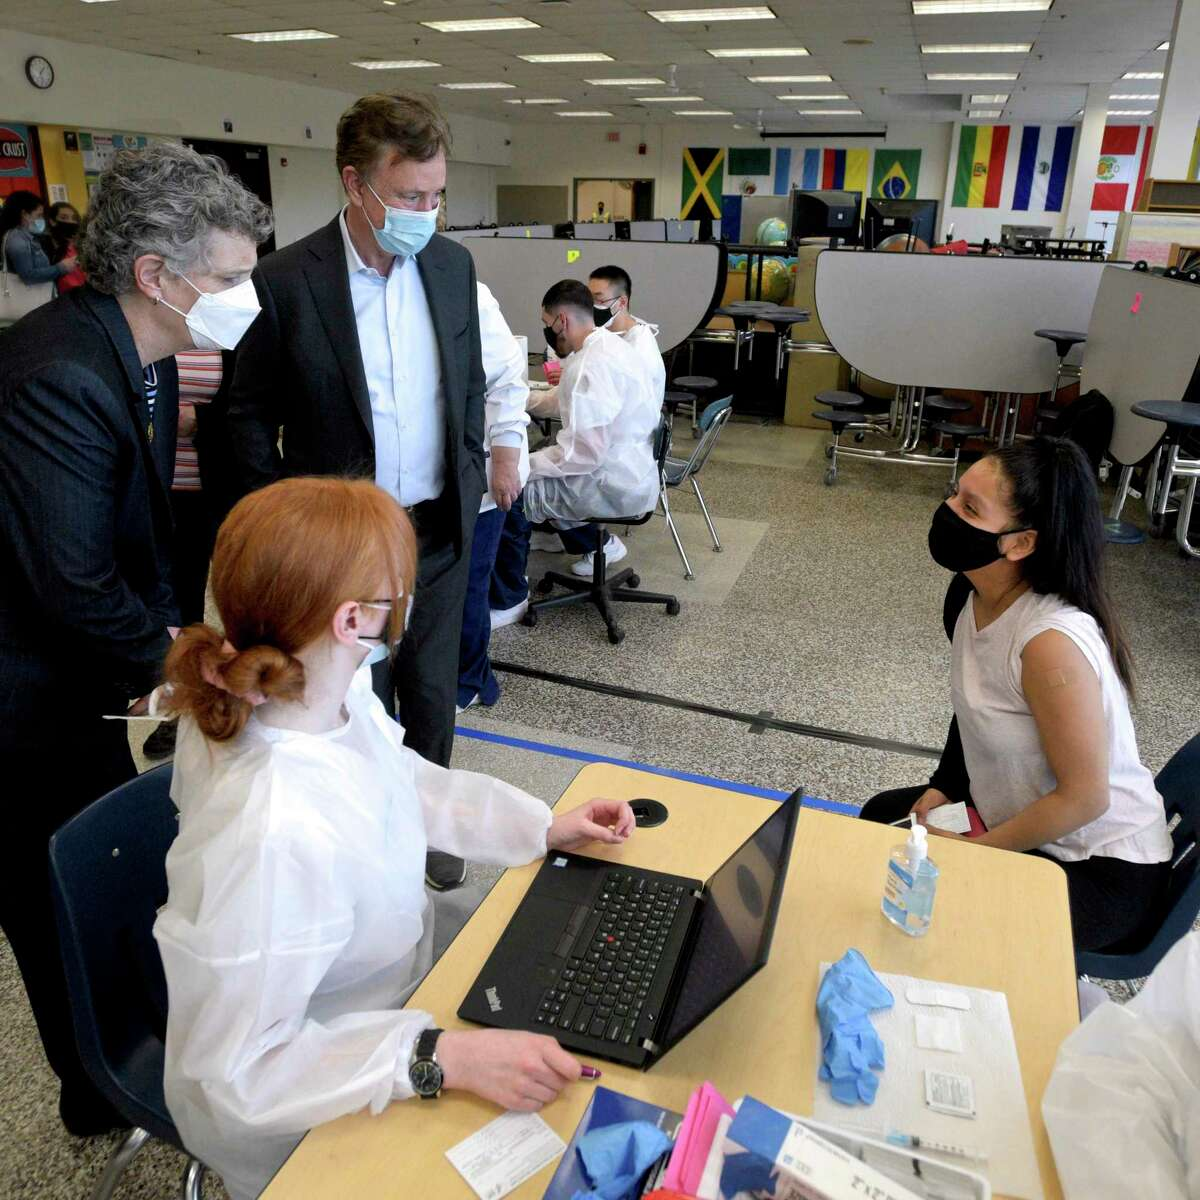 Gov. Ned Lamont visits a vaccination clinic in March 2021 in Danbury, Conn., accompanied by Beth Bye, commissioner for the Connecticut Office of Early Childhood which has been working to expand child-care options for working parents during the COVID-19 pandemic.